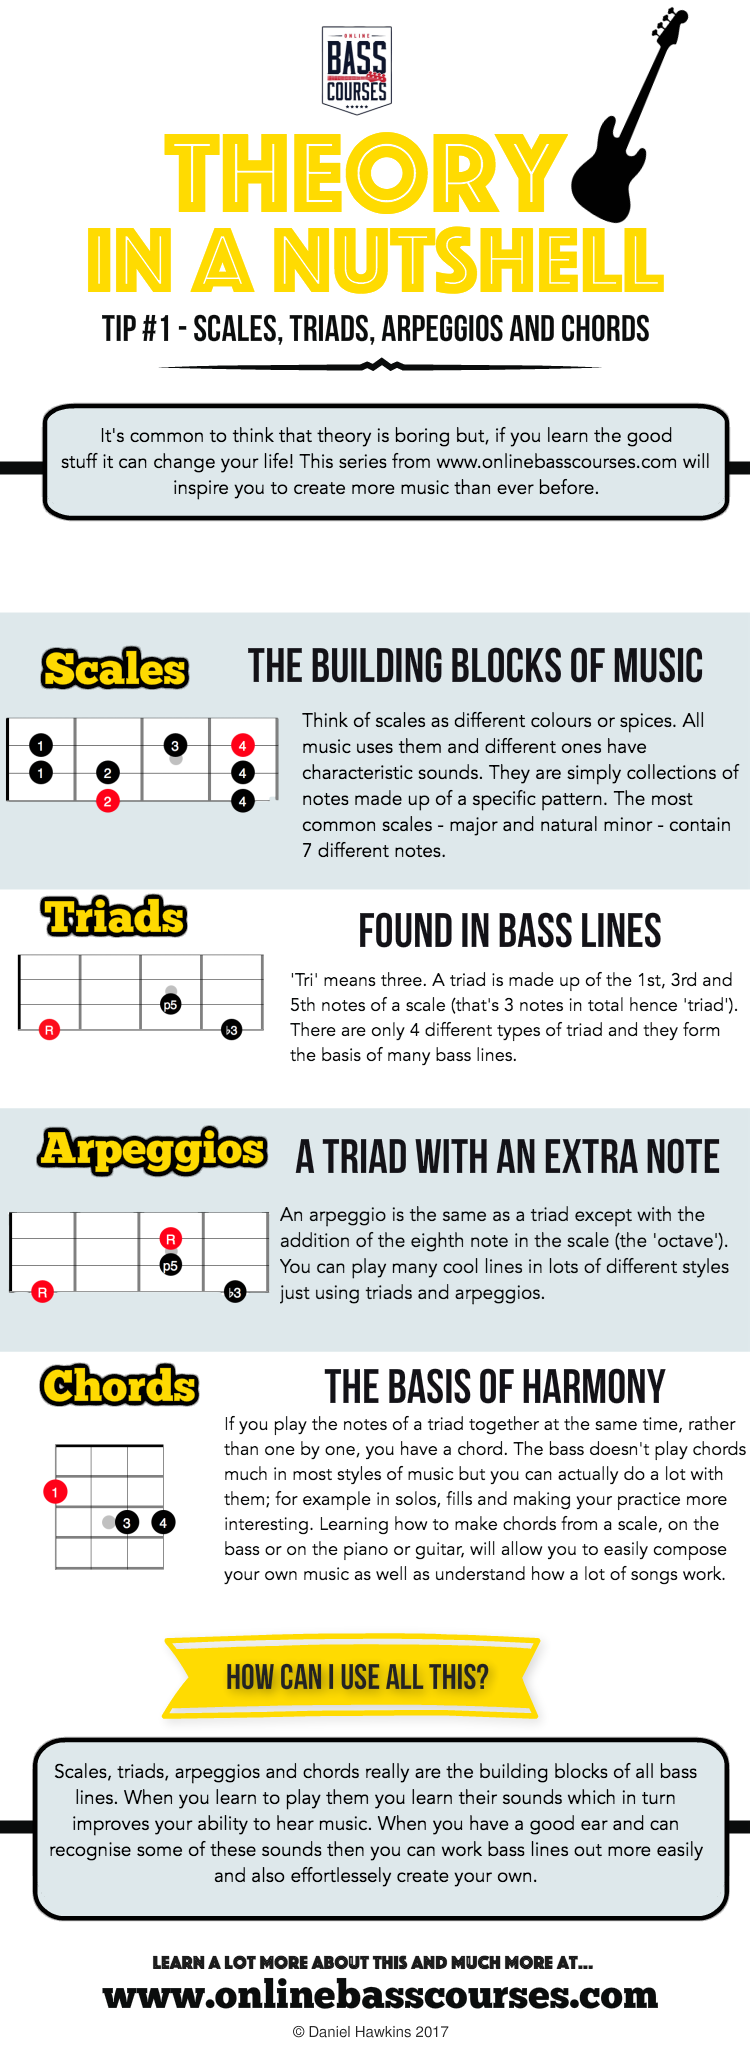 Theory In A Nutshell - Scales, triads, arpeggios and chords